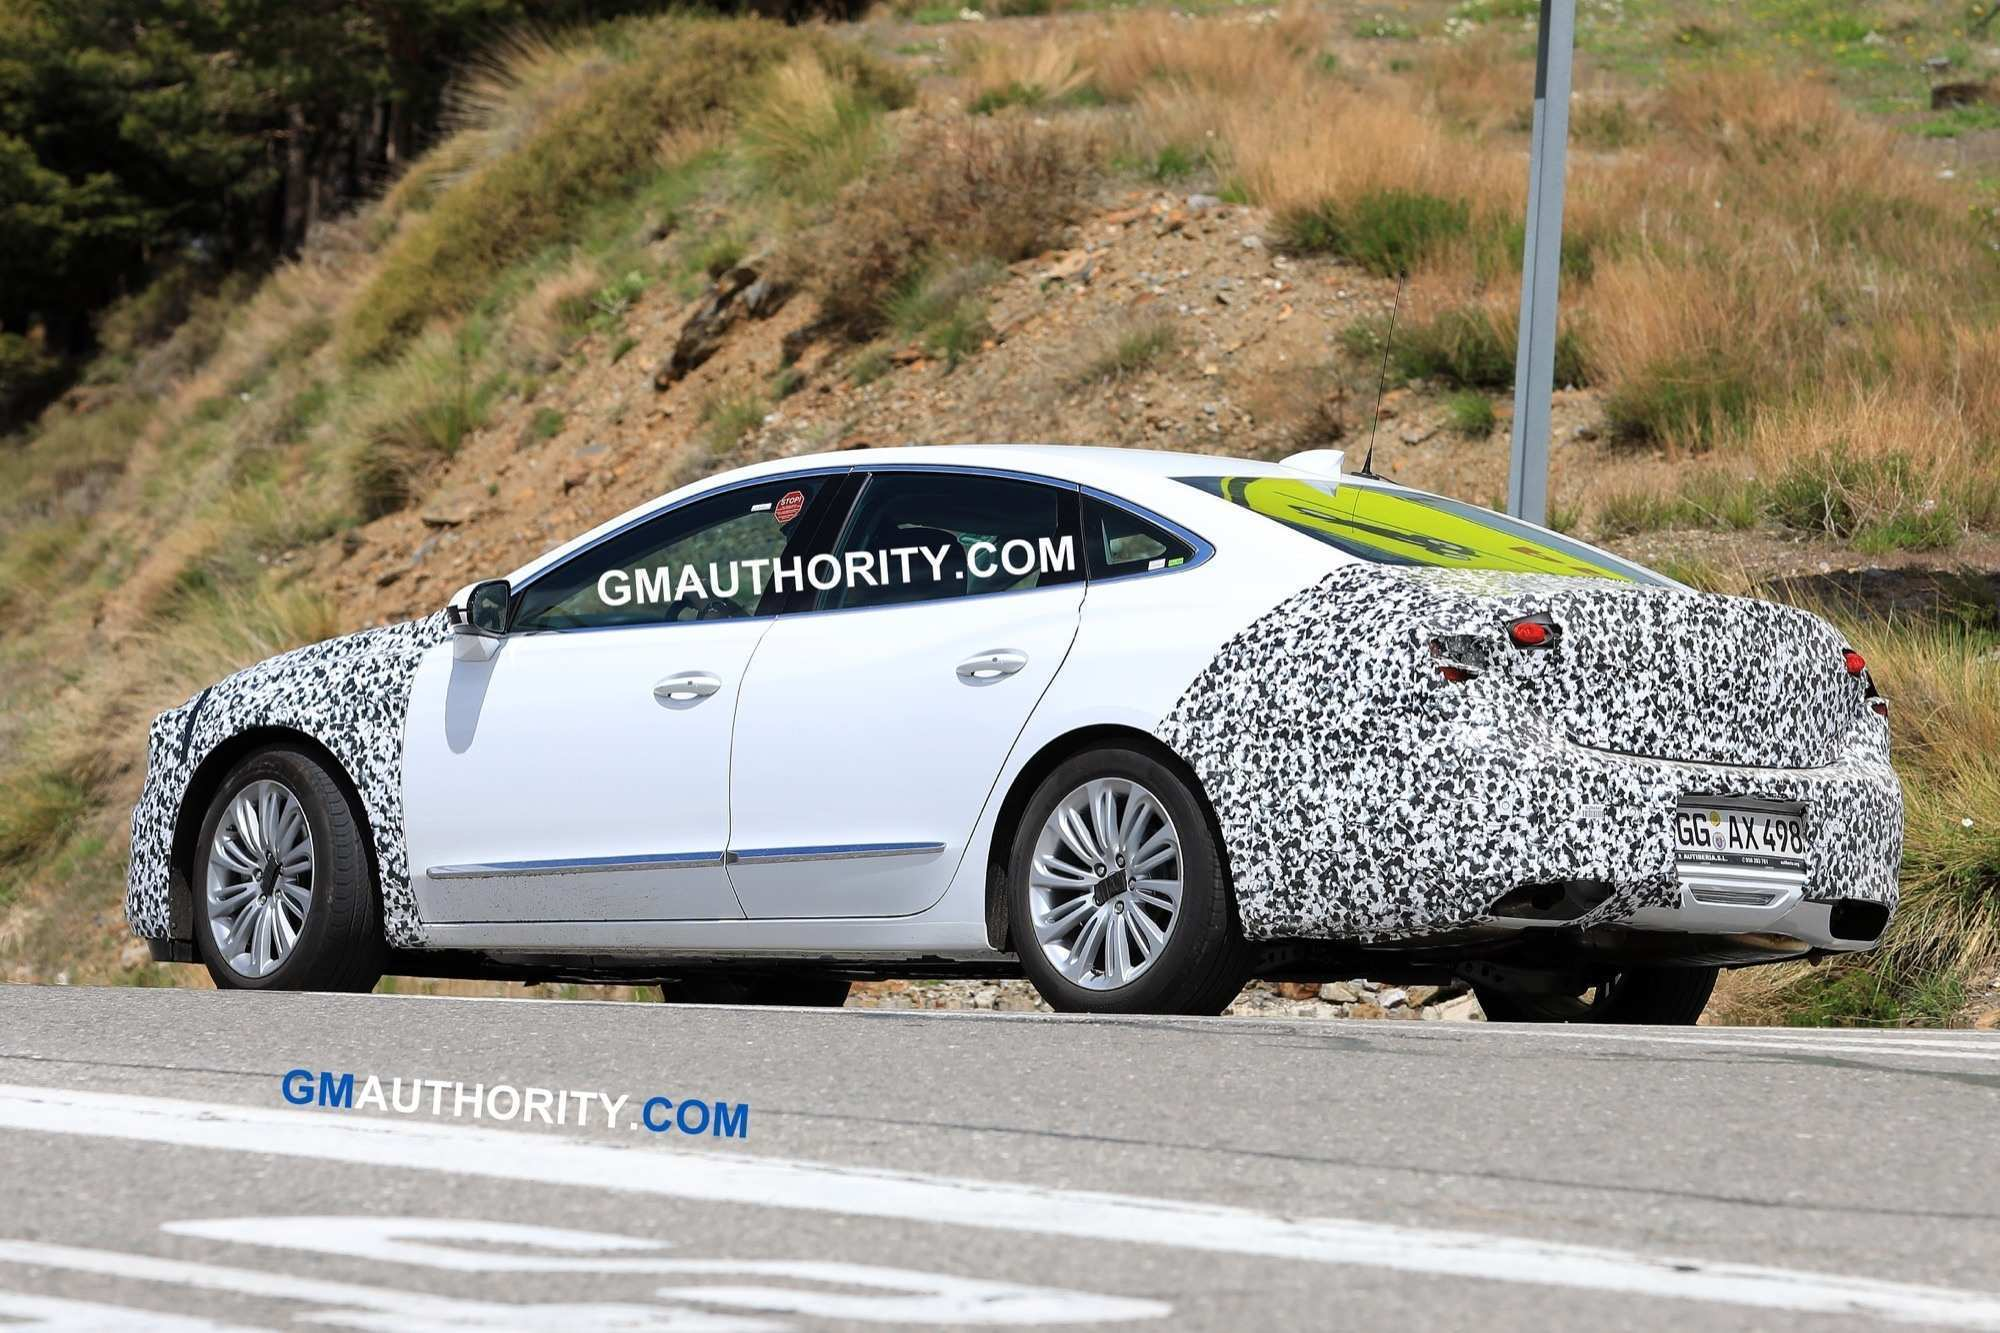 30 All New 2020 Buick Verano Spy Rumors by 2020 Buick Verano Spy